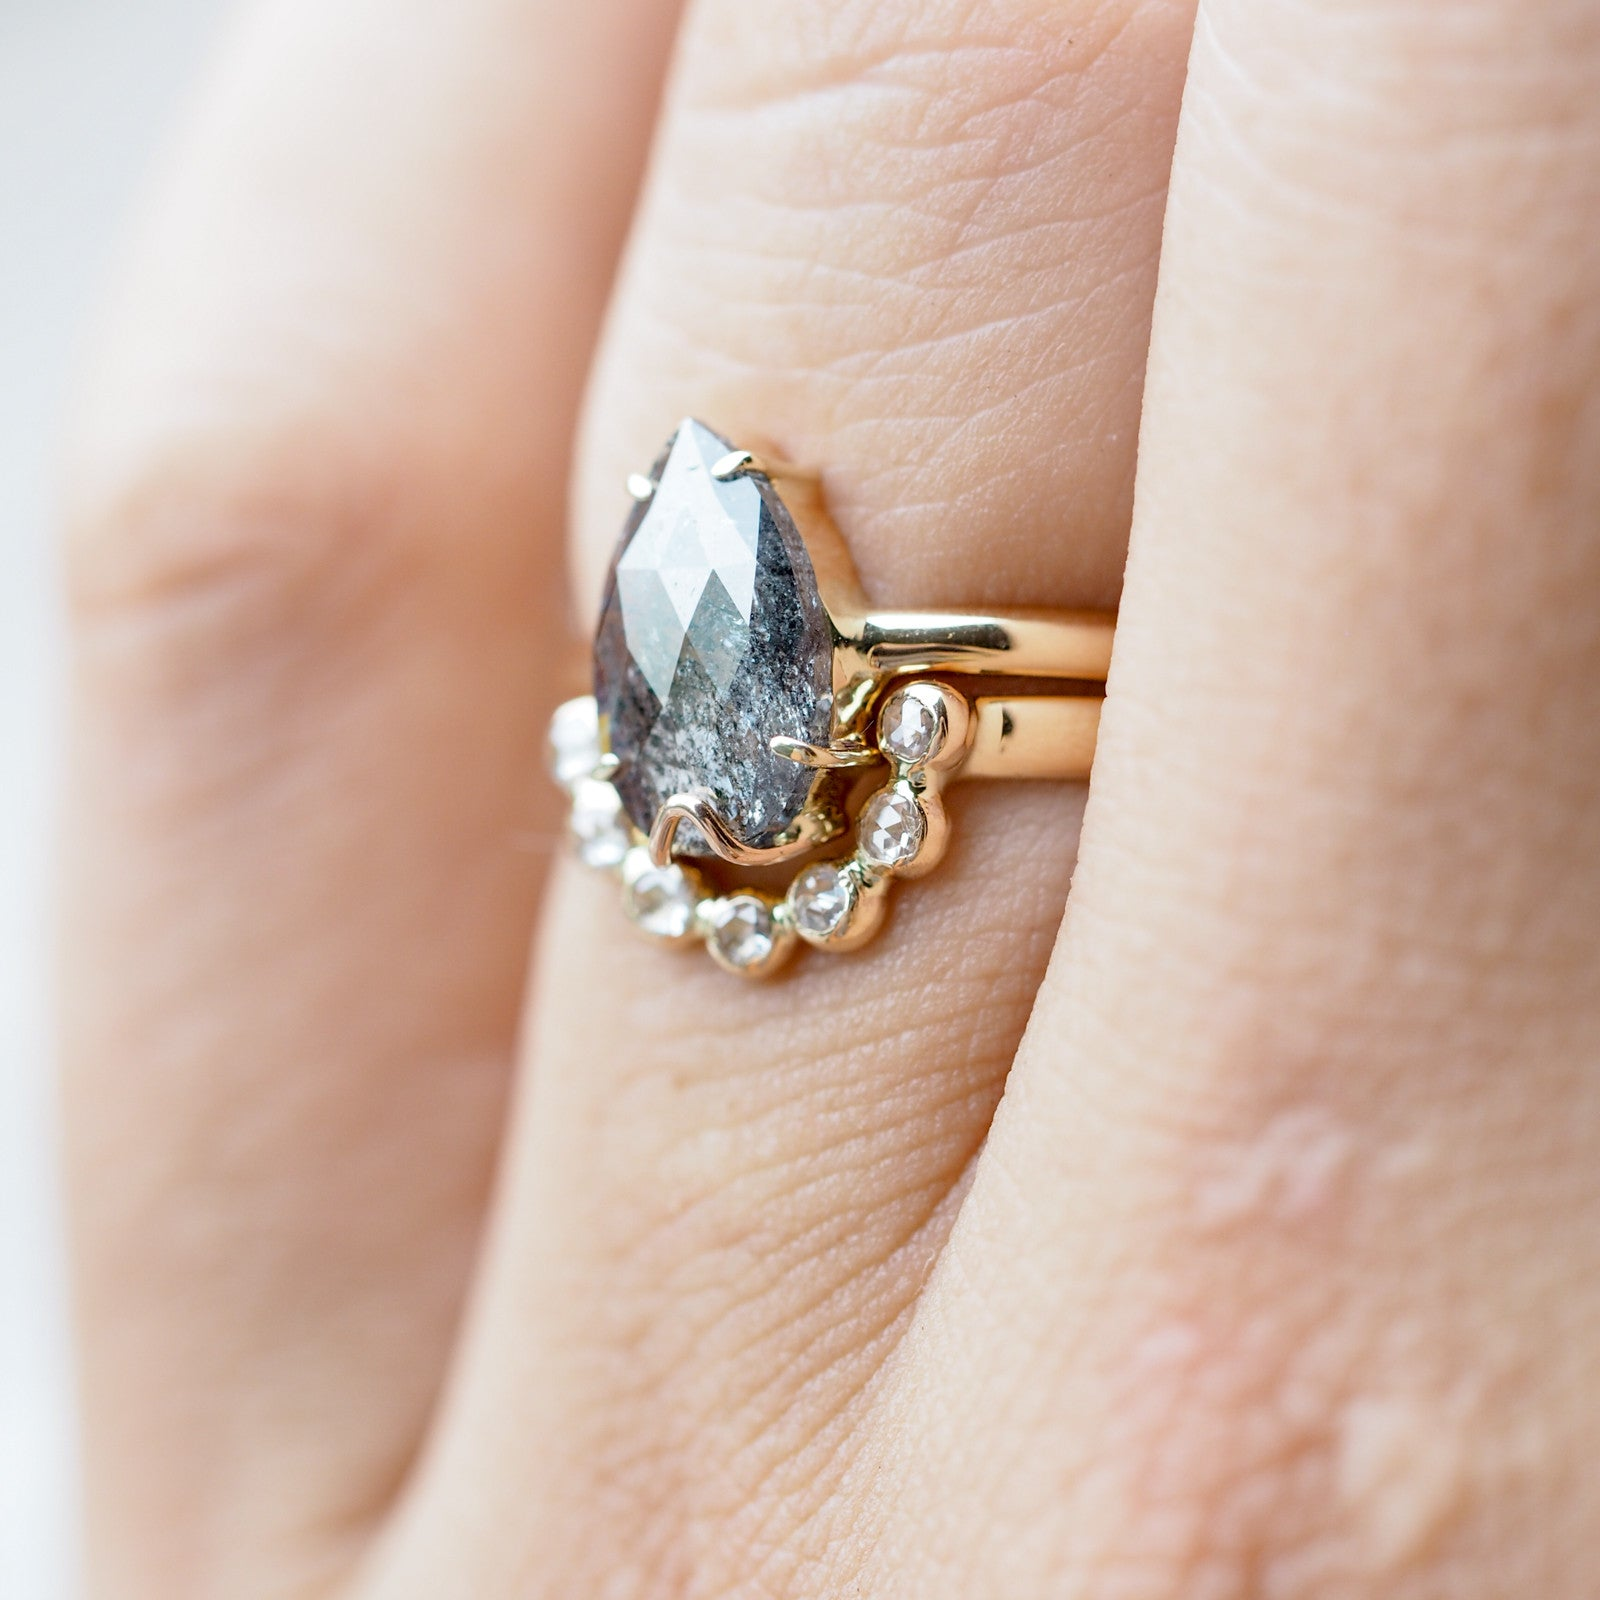 Dark Desires // Salt and Pepper Diamond Ring Set - Gardens of the Sun Jewelry